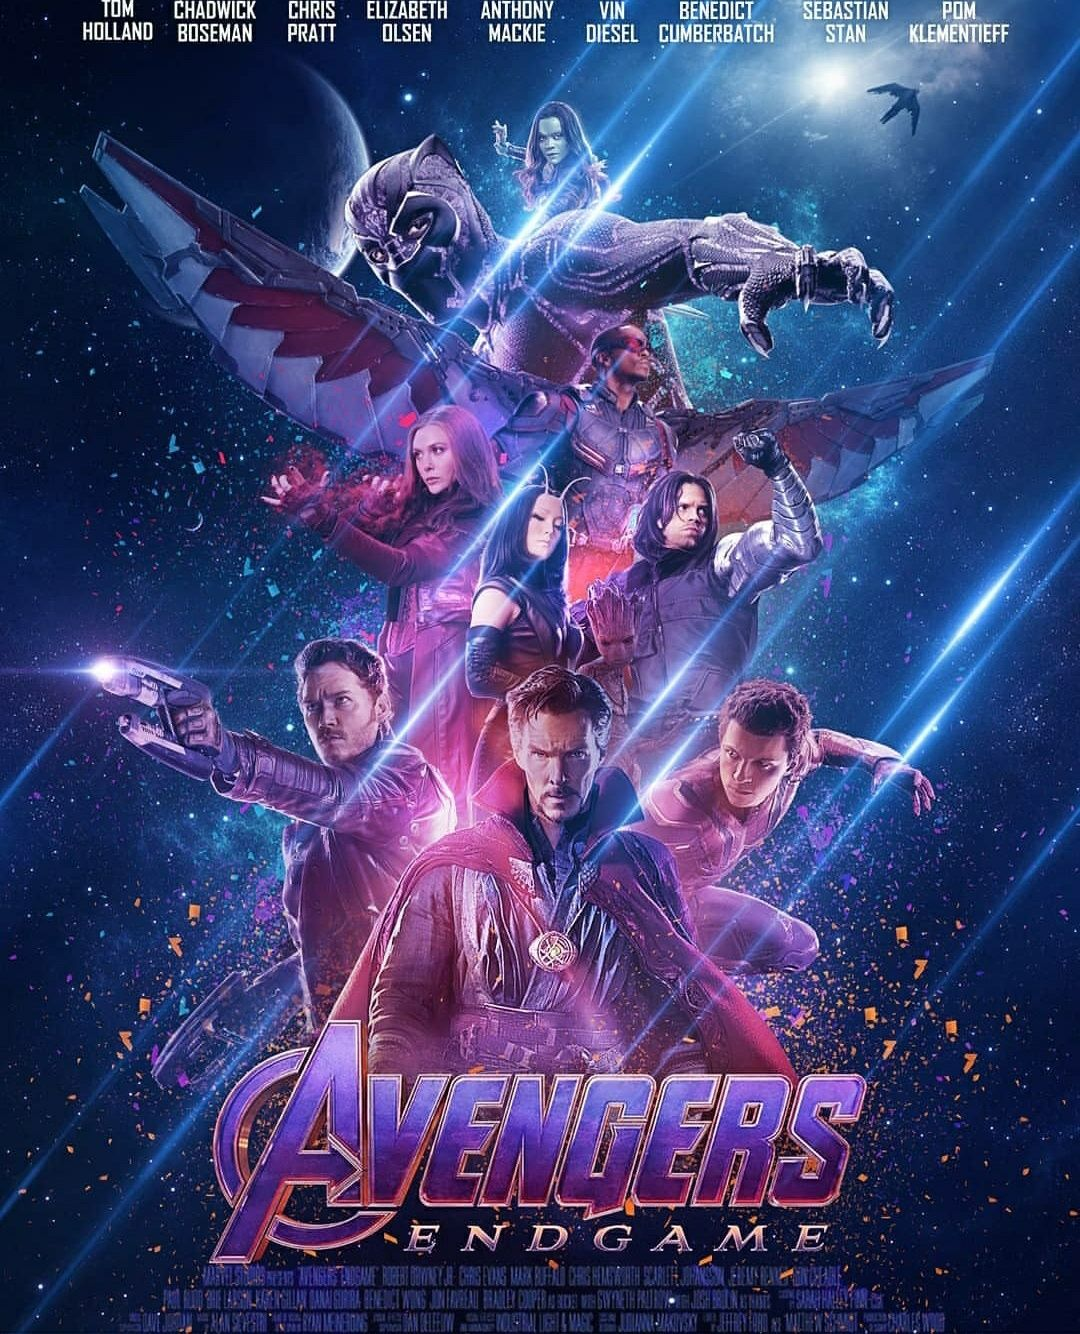 Avengers Endgame Poster With All The Dusted Characters By